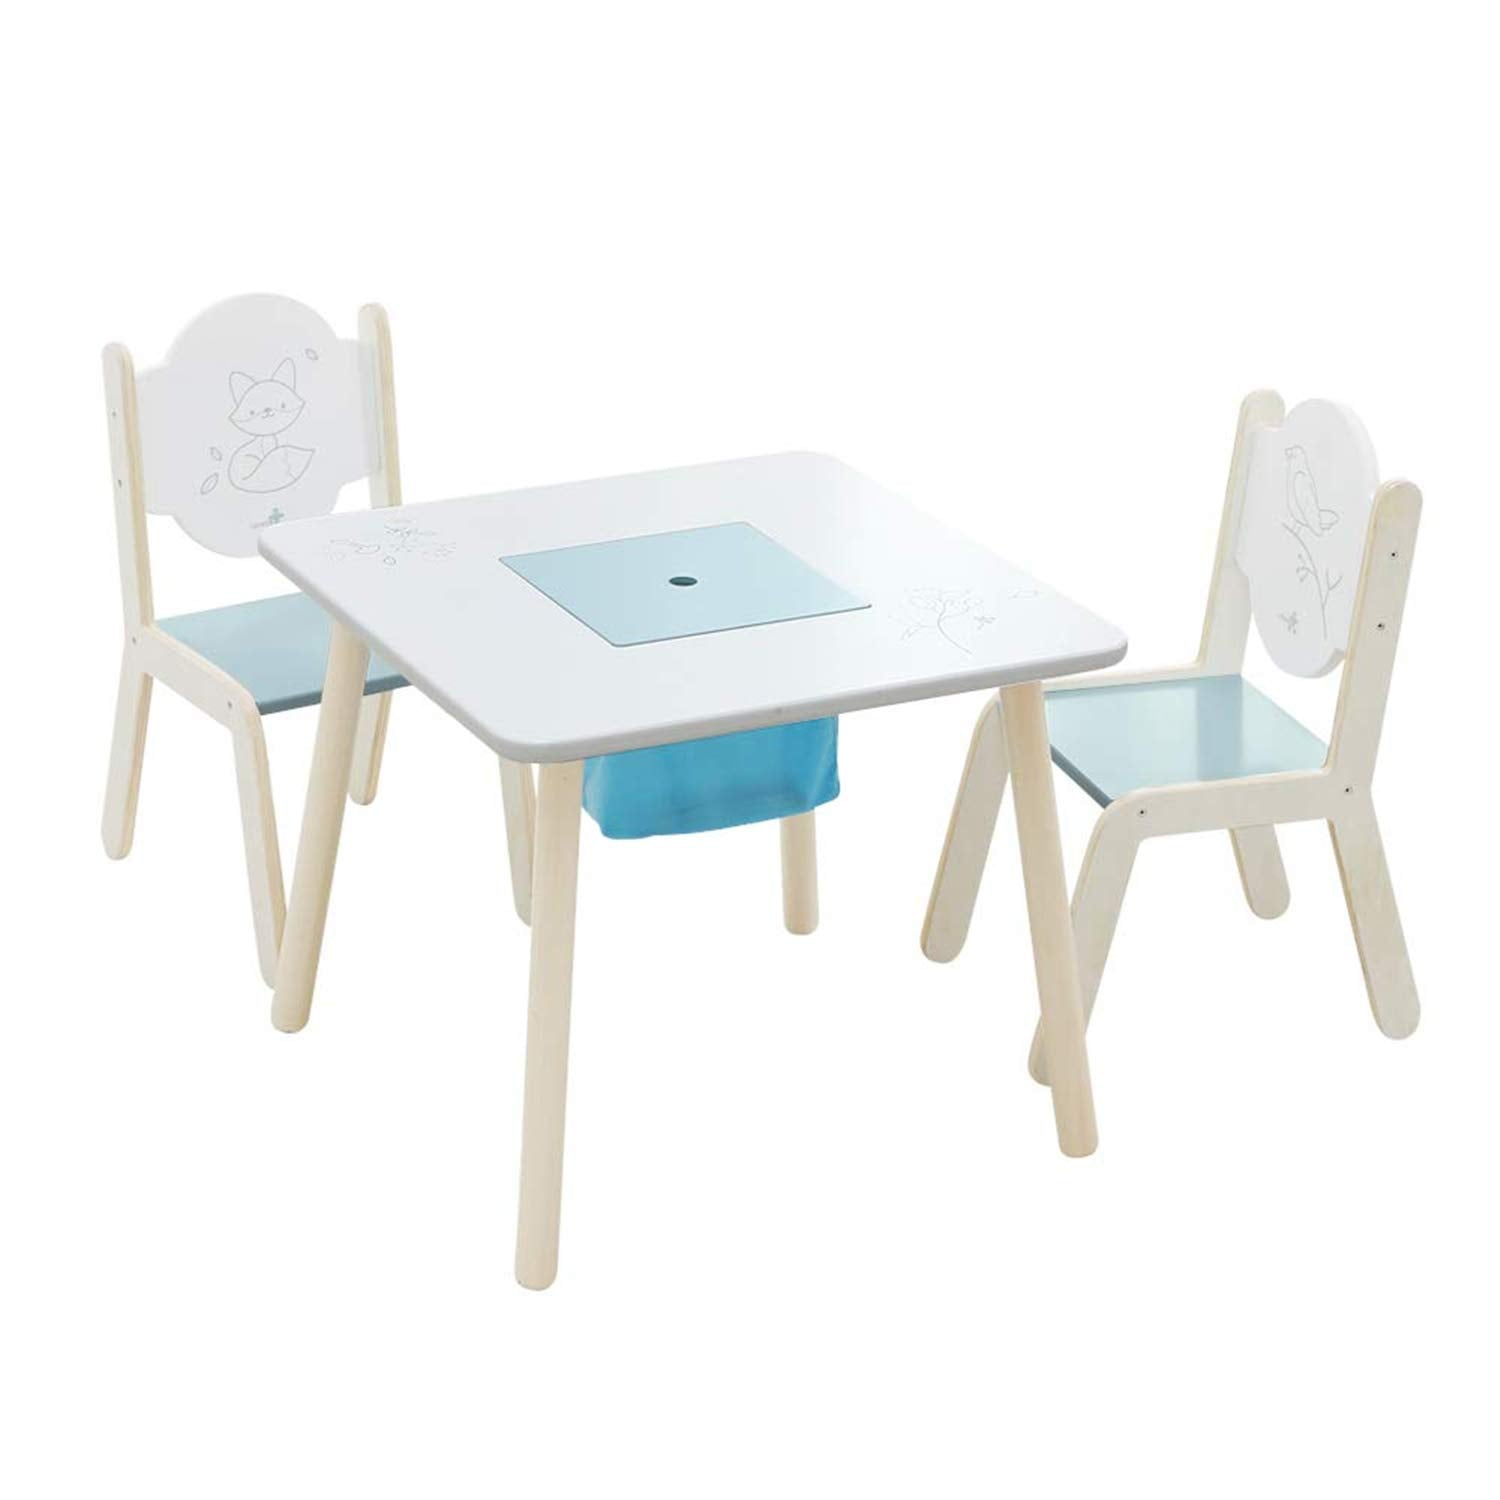 Wooden Activity Table Chair Set, Bird Printed White Toddler ...